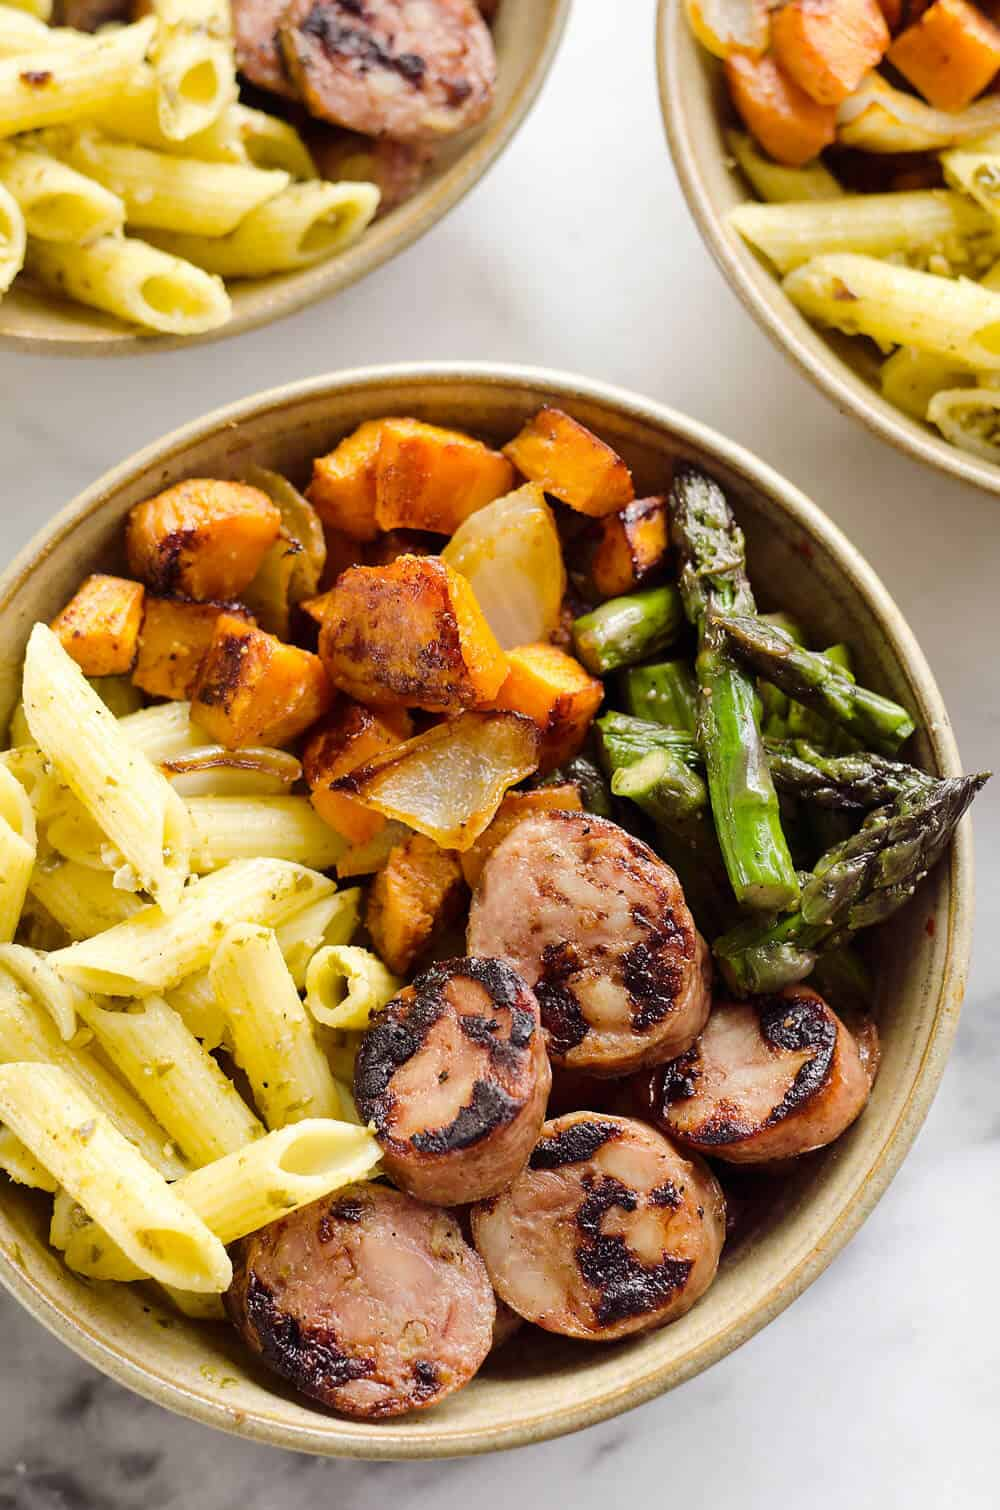 Roasted Veggie & Chicken Sausage Penne Bowls are a healthy gluten free dinner recipe bursting with bold flavors and wholesome ingredients. From chipotle roasted sweet potatoes and Aidells Chicken & Apple Sausage to Barilla Gluten Free Penne Pasta tossed in pesto, this dish is a well-rounded and satisfying meal you will love.